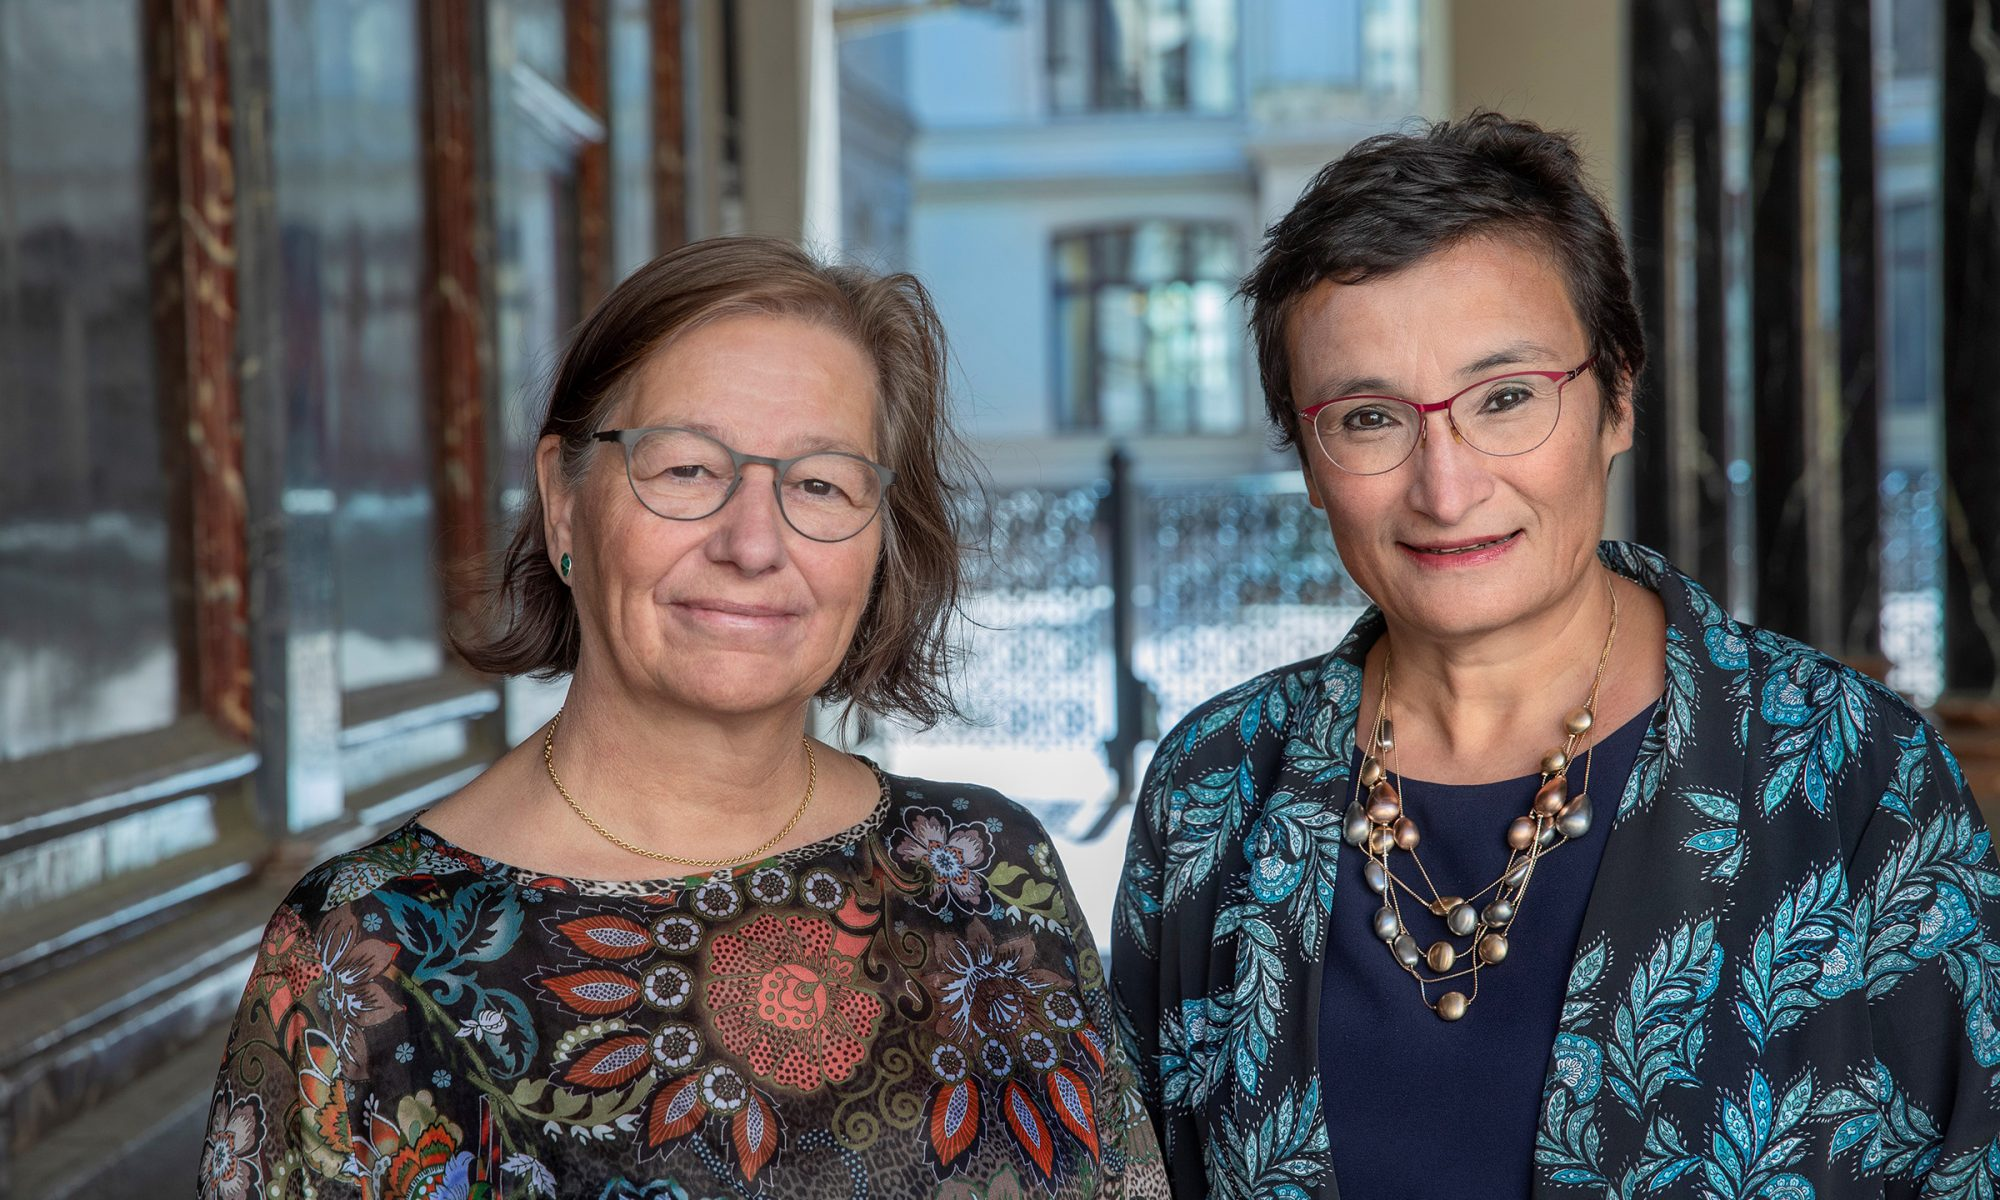 """Among other things, we will be examining methods and tools for ensuring that AI and autonomous systems are designed so they don't clash with human values and ethical principles,"" says Professor Dignum, who researches on societal, ethical and cultural implications of AI at Umeå University. From left to right: Kerstin Sahlin, Professor and Chair, WASP-HS, Uppsala University, and Virginia Dignum, Professor and scientific director, WASP-HS, Umeå University."